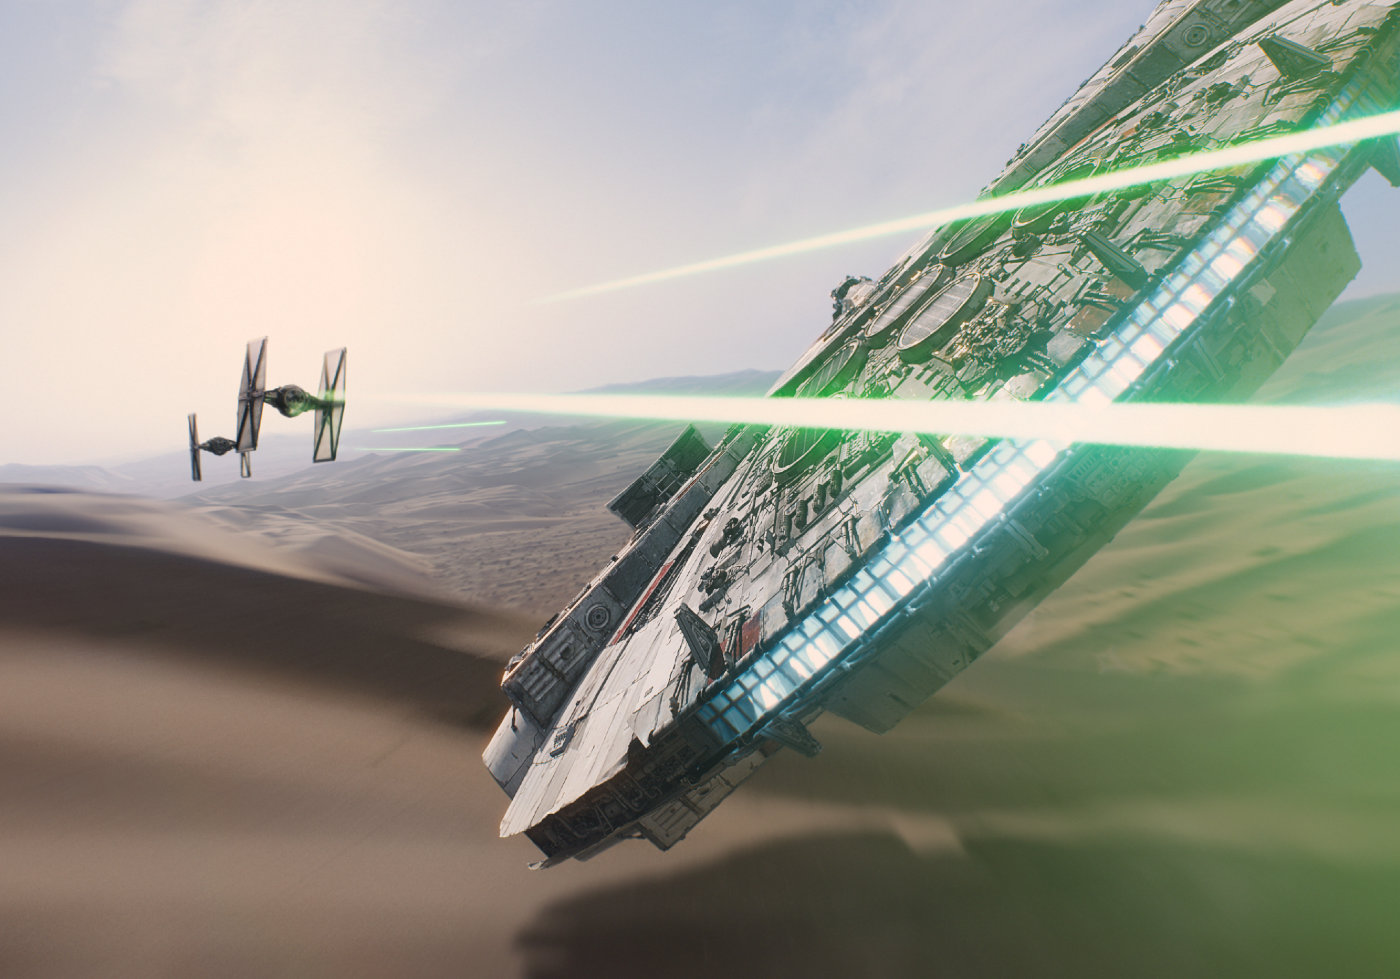 Scena iz filma Star Wars: The Force Awakens.